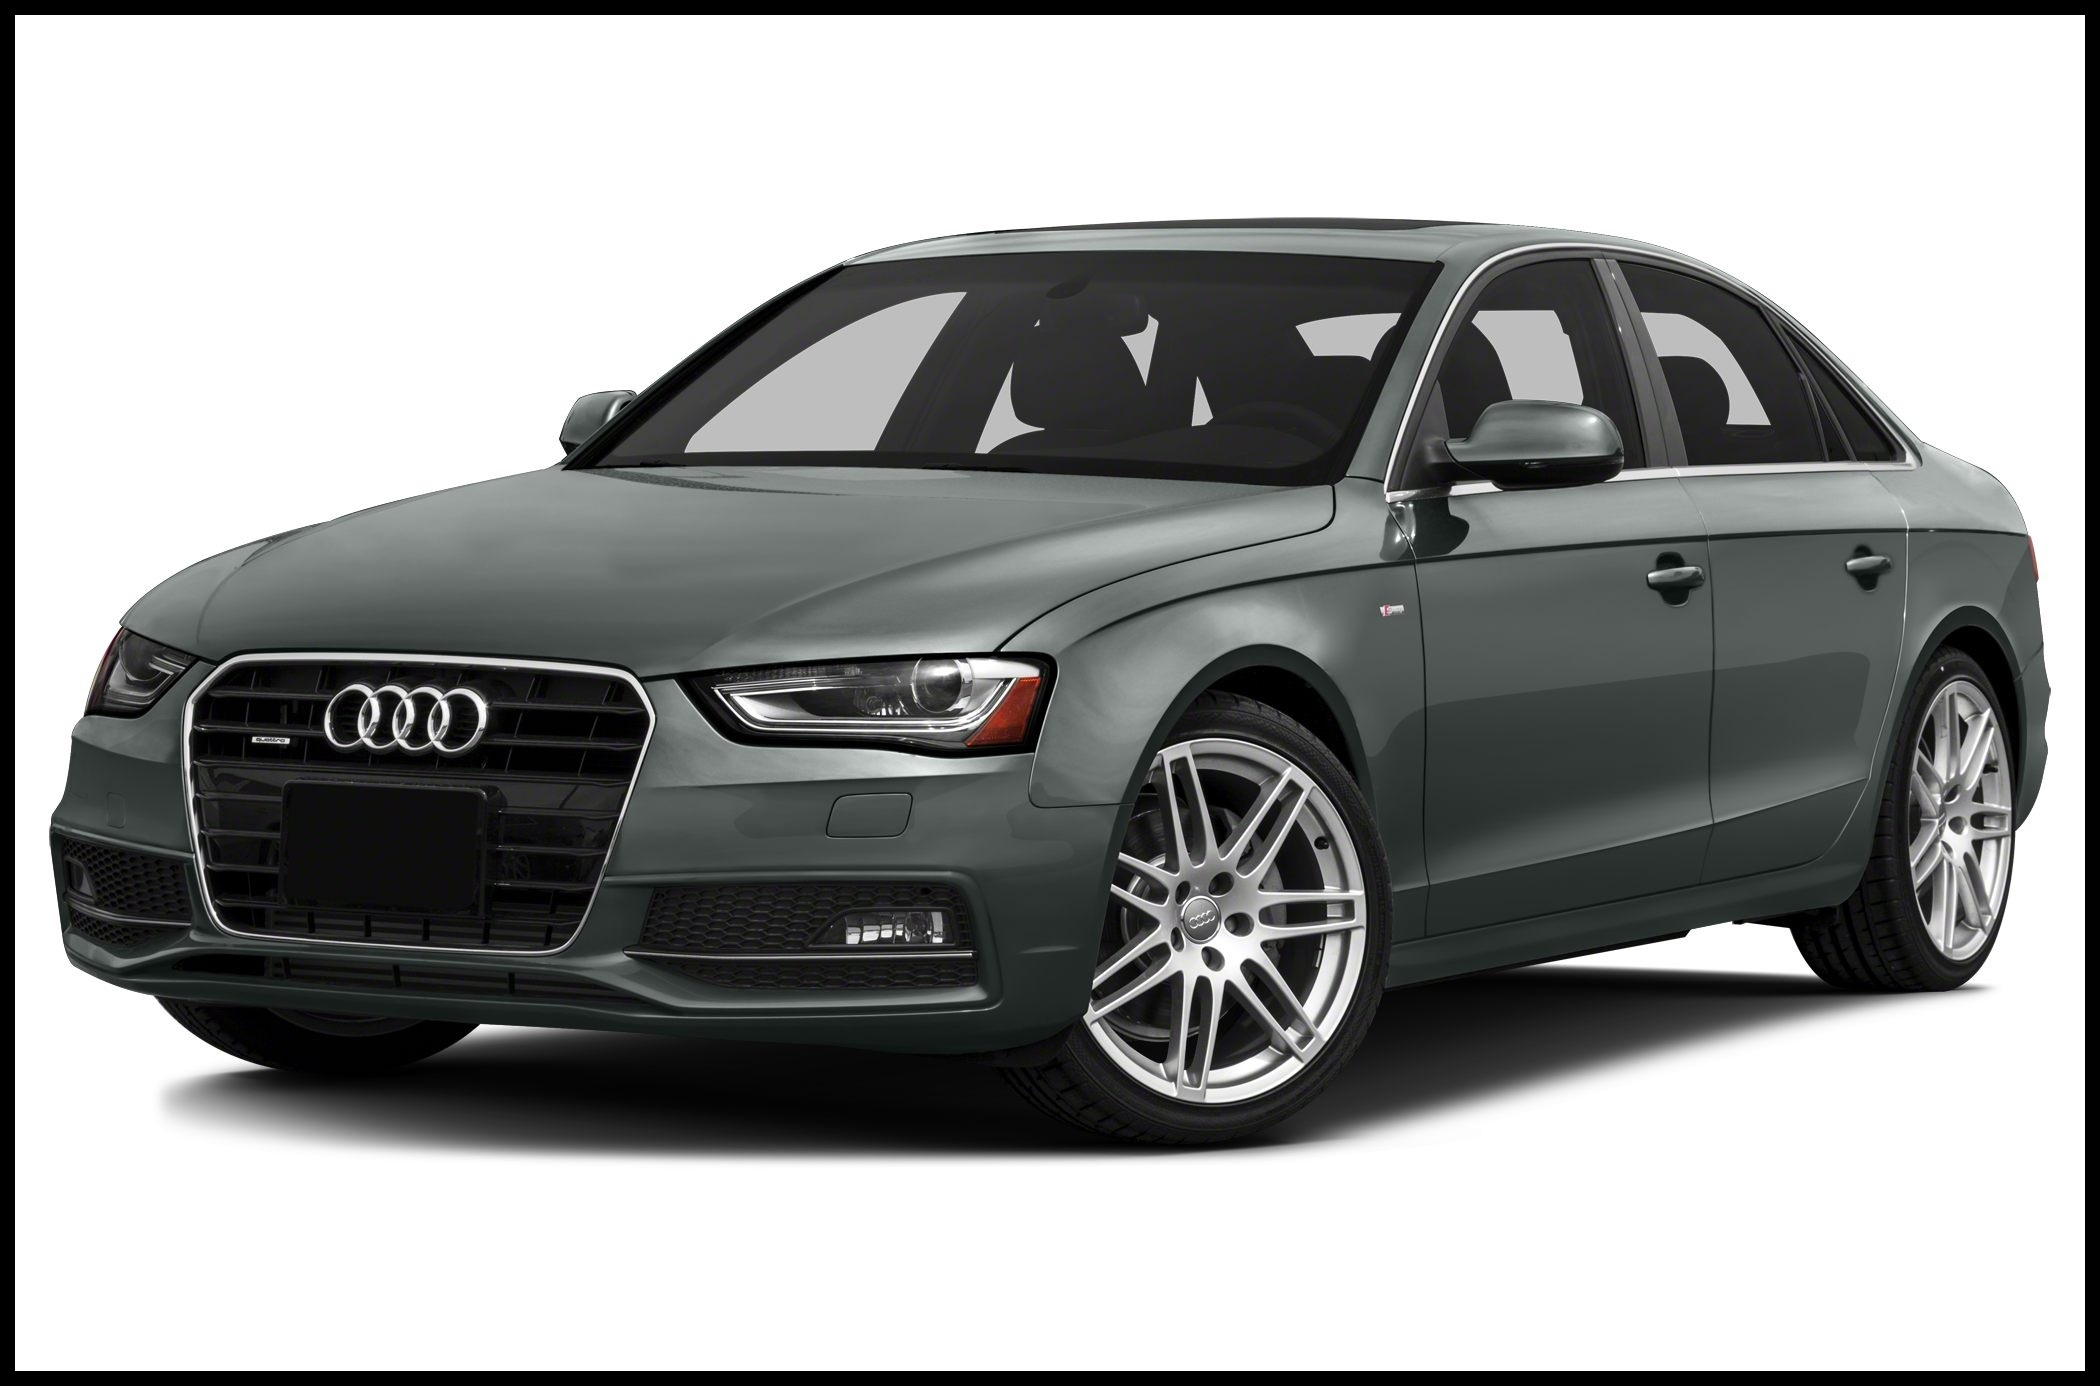 2016 Audi A4 2 0T Premium 4dr All wheel Drive quattro Sedan Specs and Prices